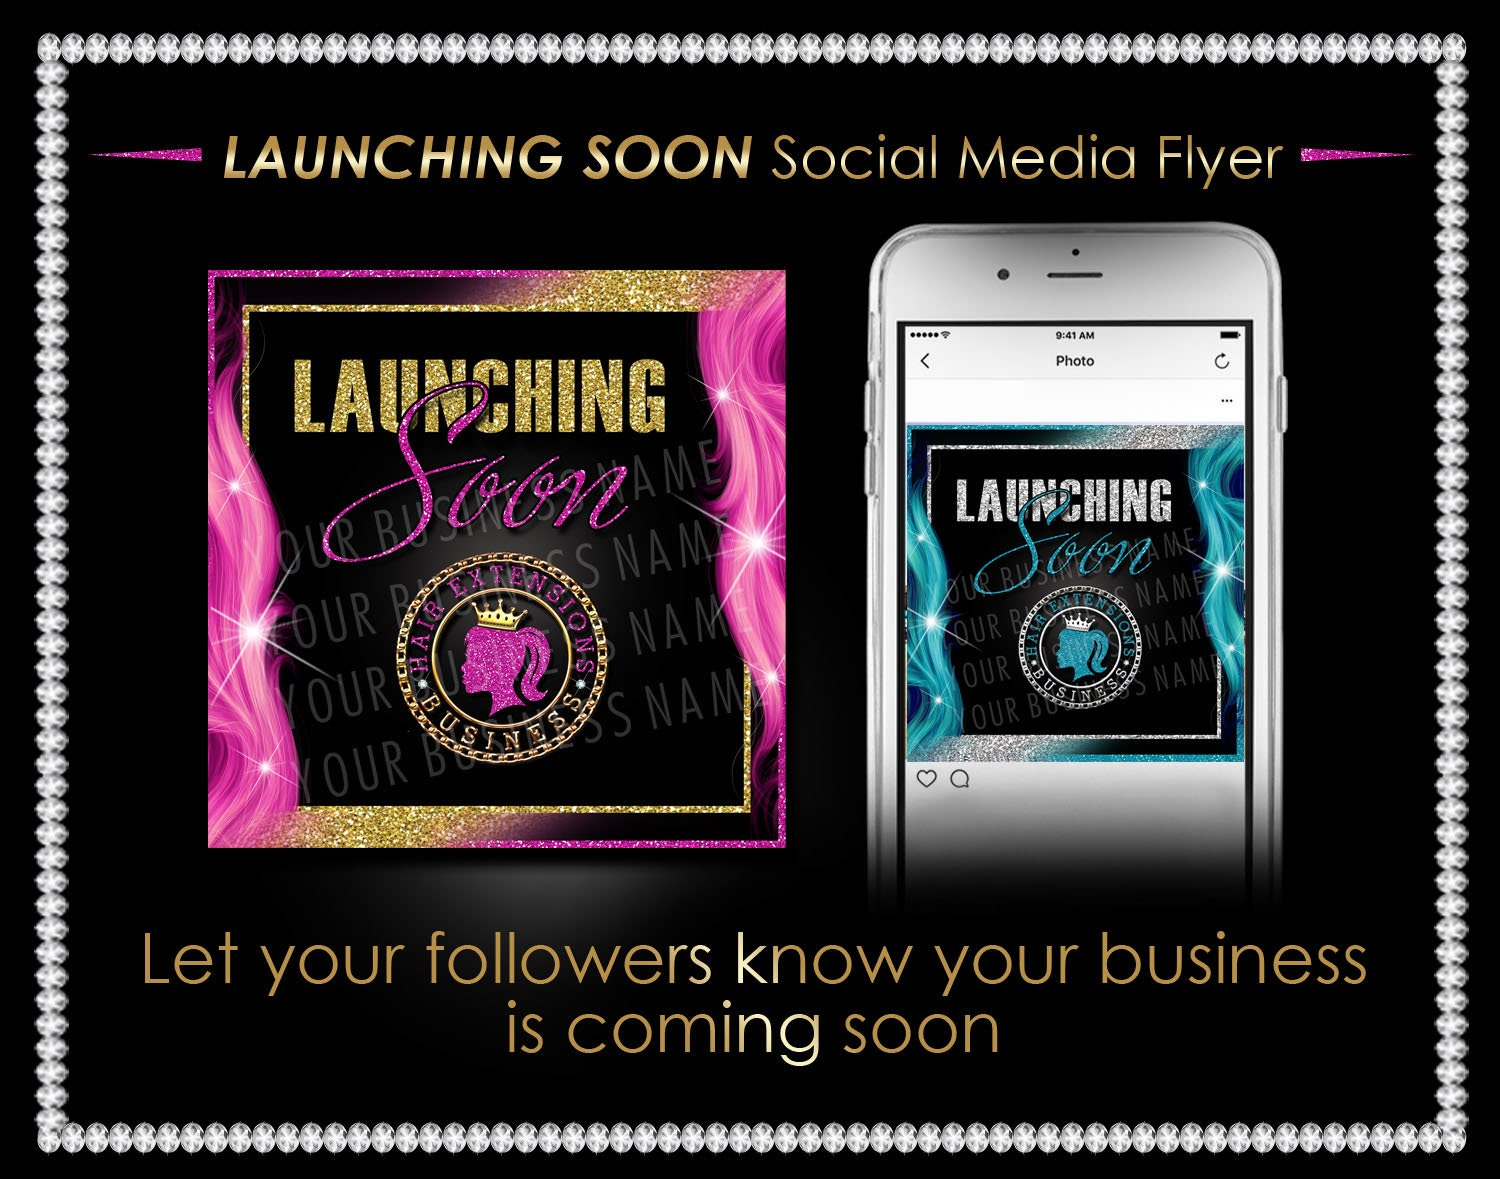 Launching Soon Flyer Social Media Post Coming Soon Poster Hair Business Flyer Instagram Post Hair Business Launching Instagram Flyer